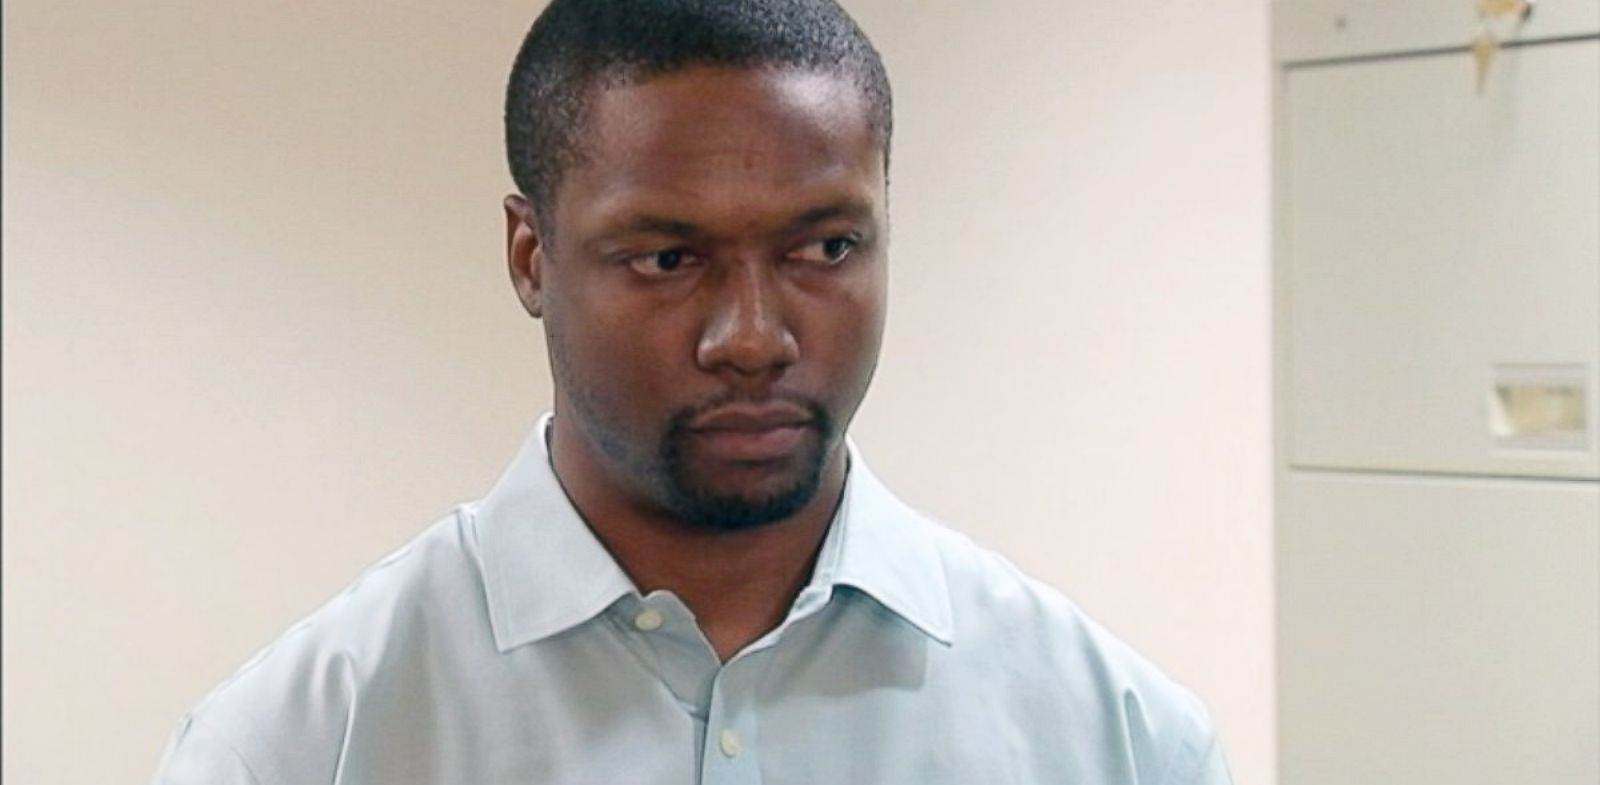 PHOTO: Treme actor Robert Brown is filing a class action lawsuit against Macy's and the NYPD for racial profiling.